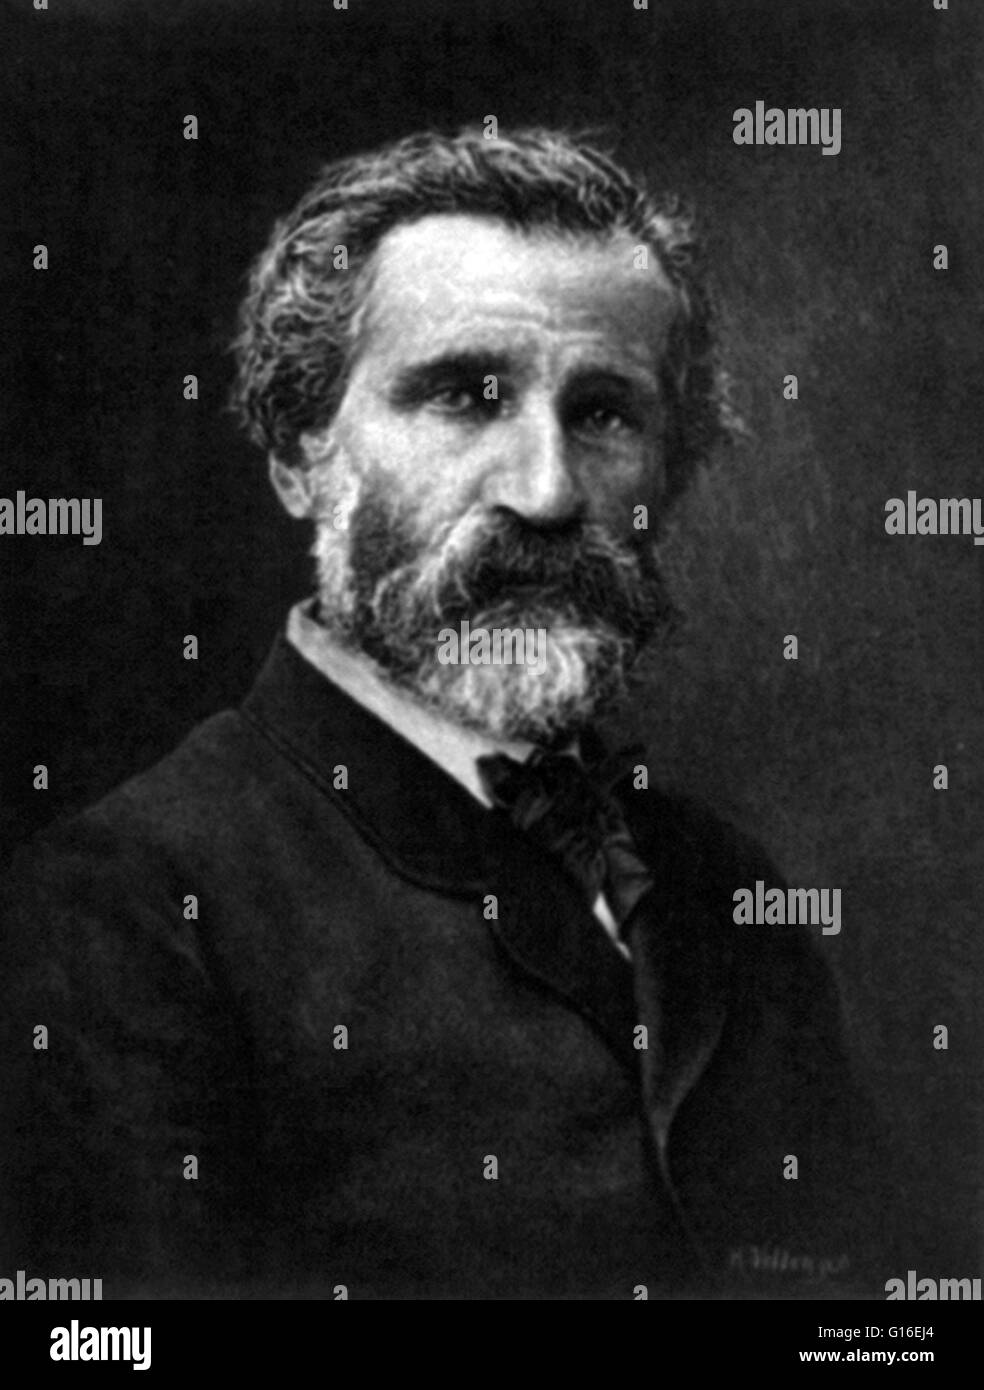 Giuseppe Fortunino Francesco Verdi (October 9 or 10 1813 - January 27, 1901) was an Italian Romantic composer primarily - Stock Image